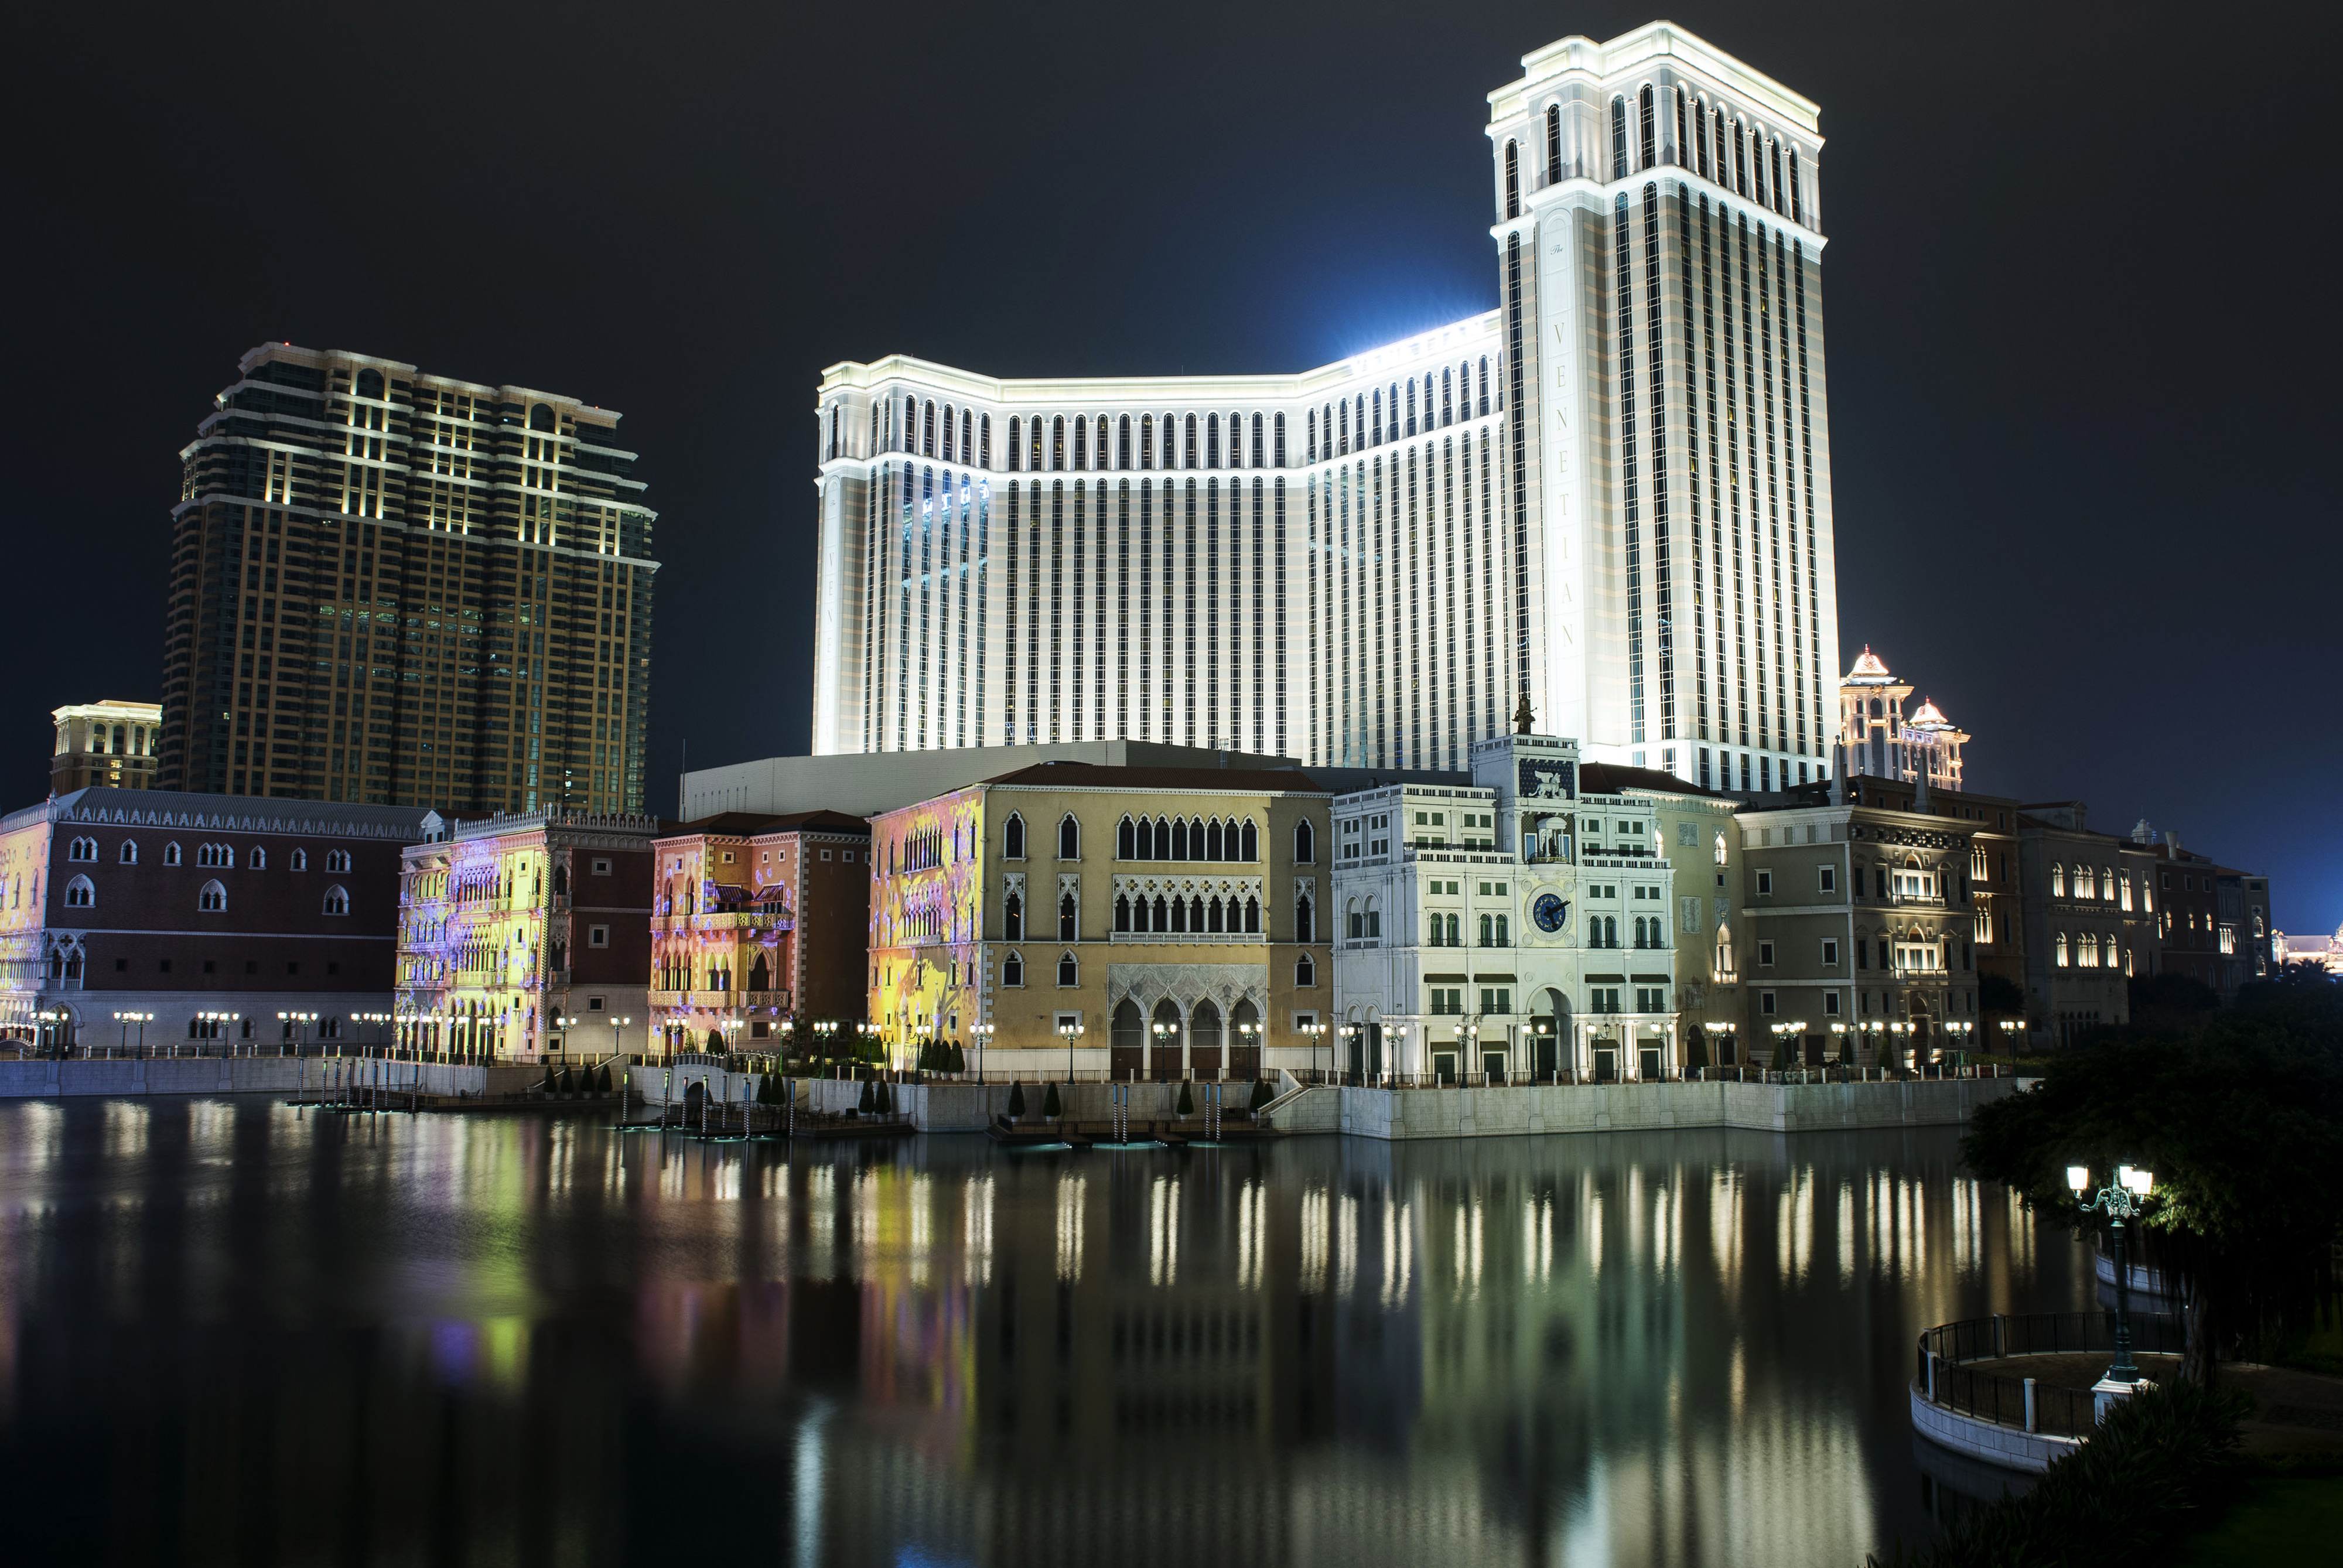 Views Of Casinos As Melco Crown Entertainment Ltd. And MGM Resorts International Announce Earnings Results